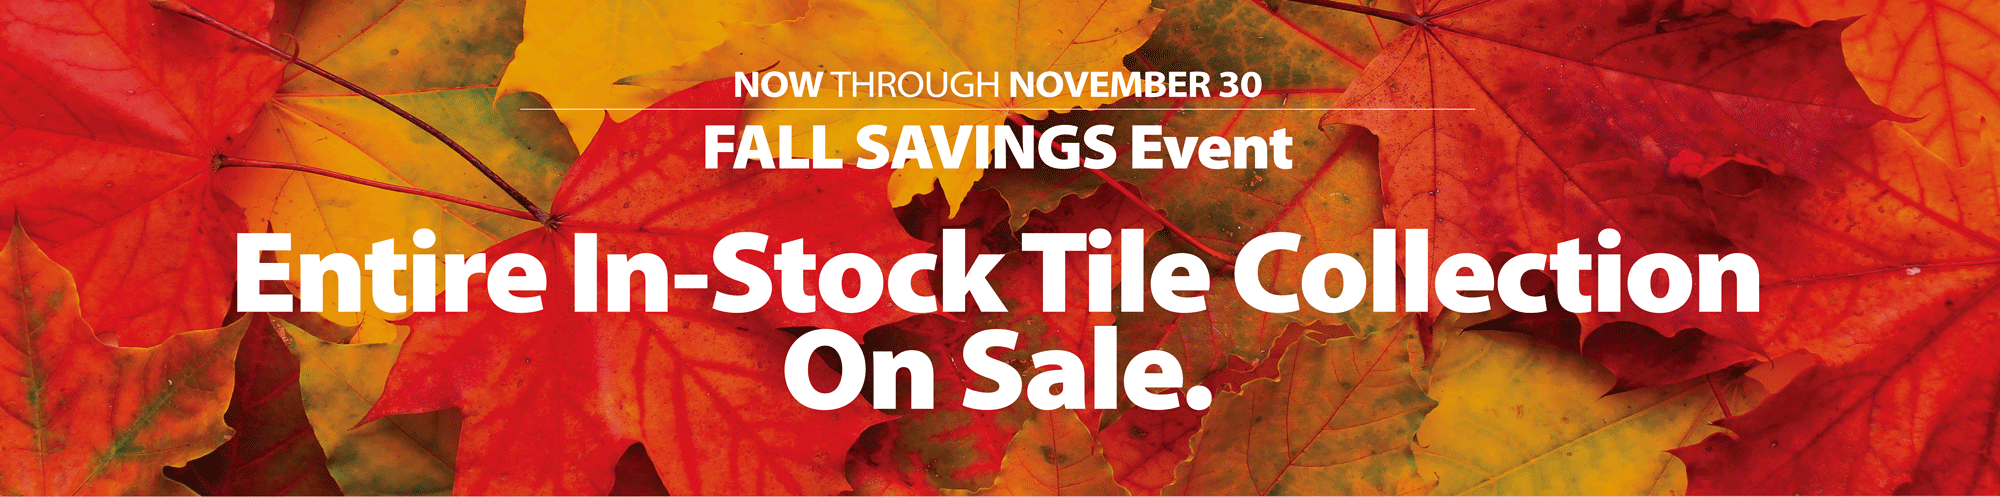 Now through November 30 - Entire In-Stock Tile Collection on Sale